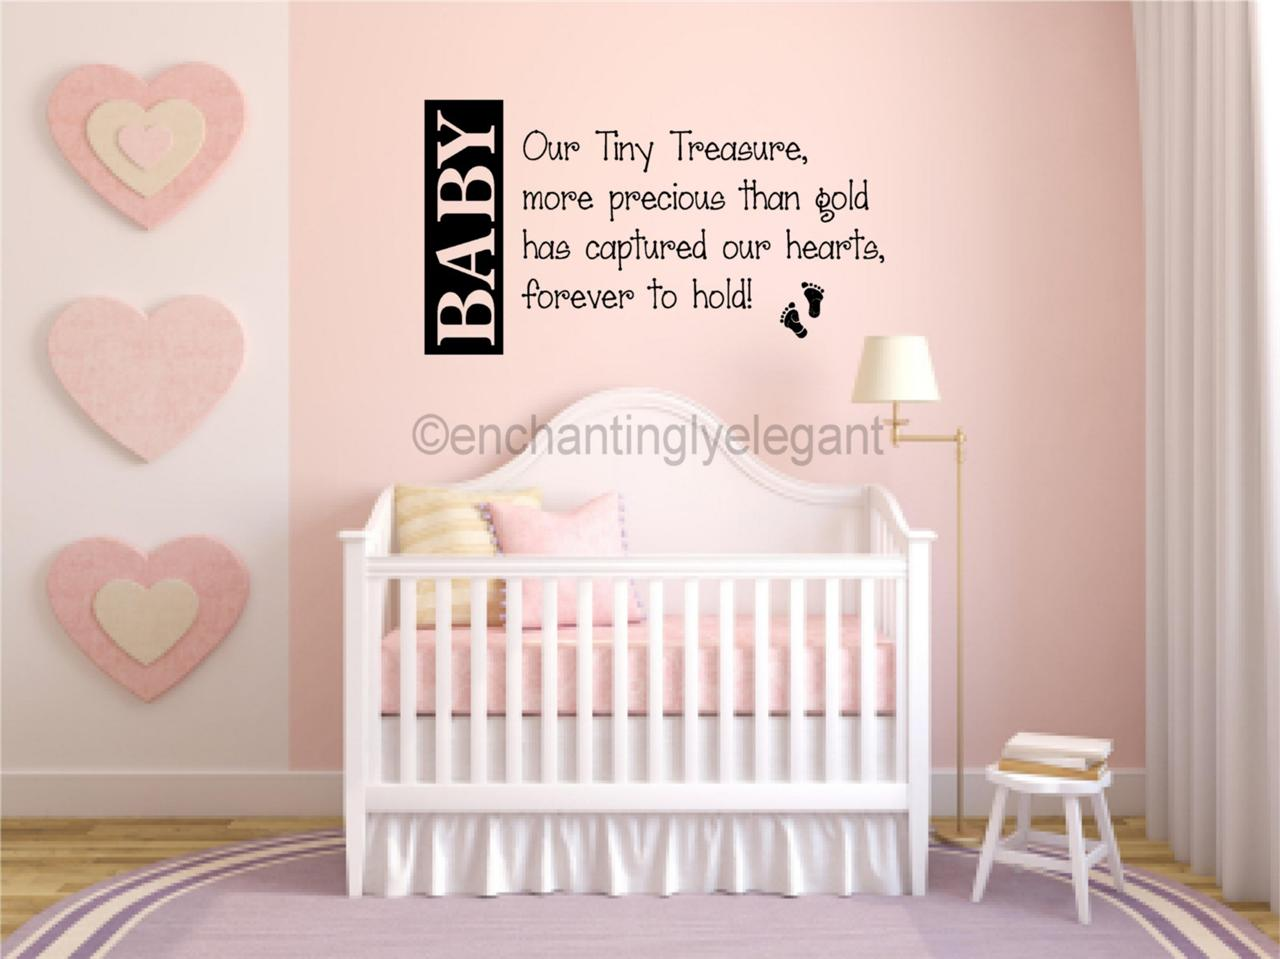 Baby our tiny treasure nursery room decor vinyl decal wall for Baby room decoration stickers